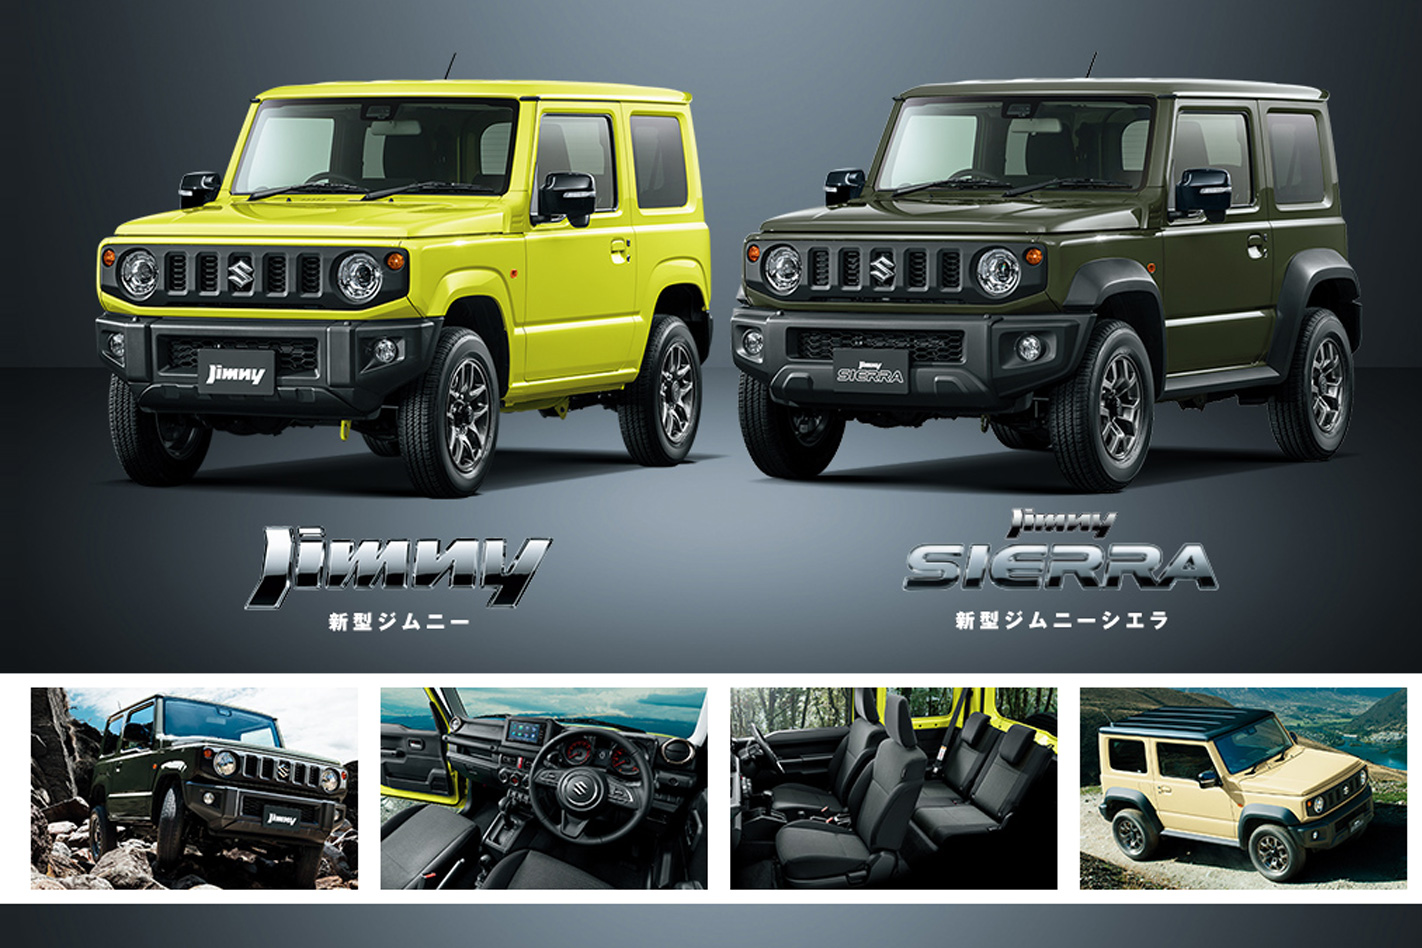 2019 Suzuki Jimny: News, Design, Release >> 2019 Suzuki Jimny Officially Revealed